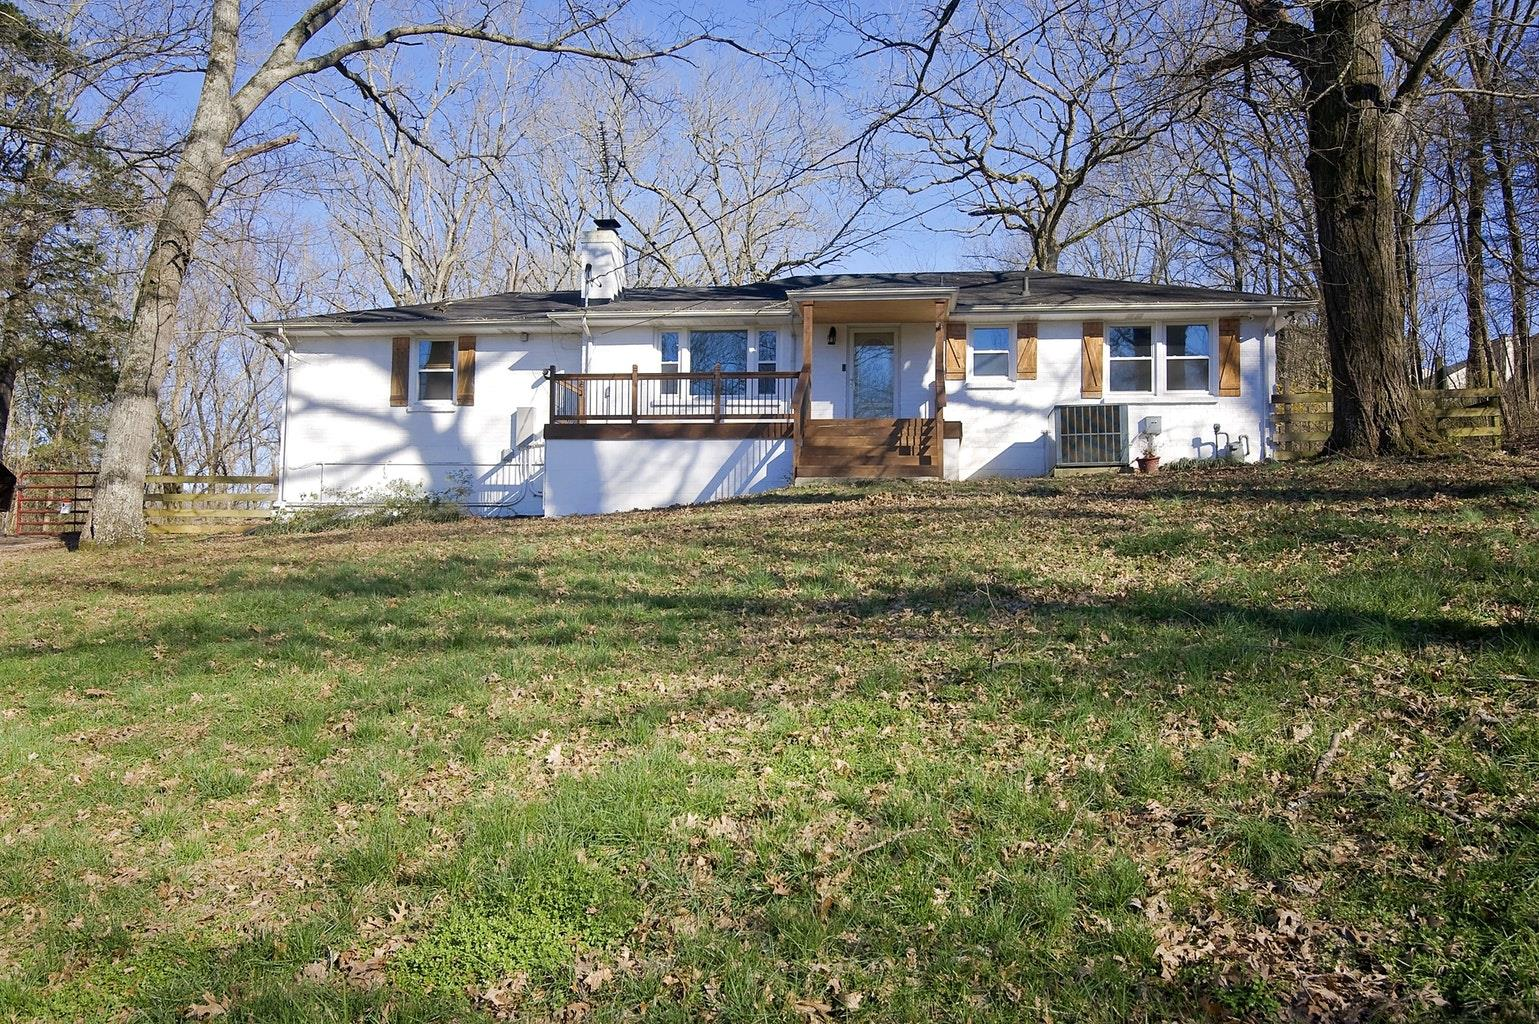 7690 Sawyer Brown Rd, Bellevue in Davidson County County, TN 37221 Home for Sale